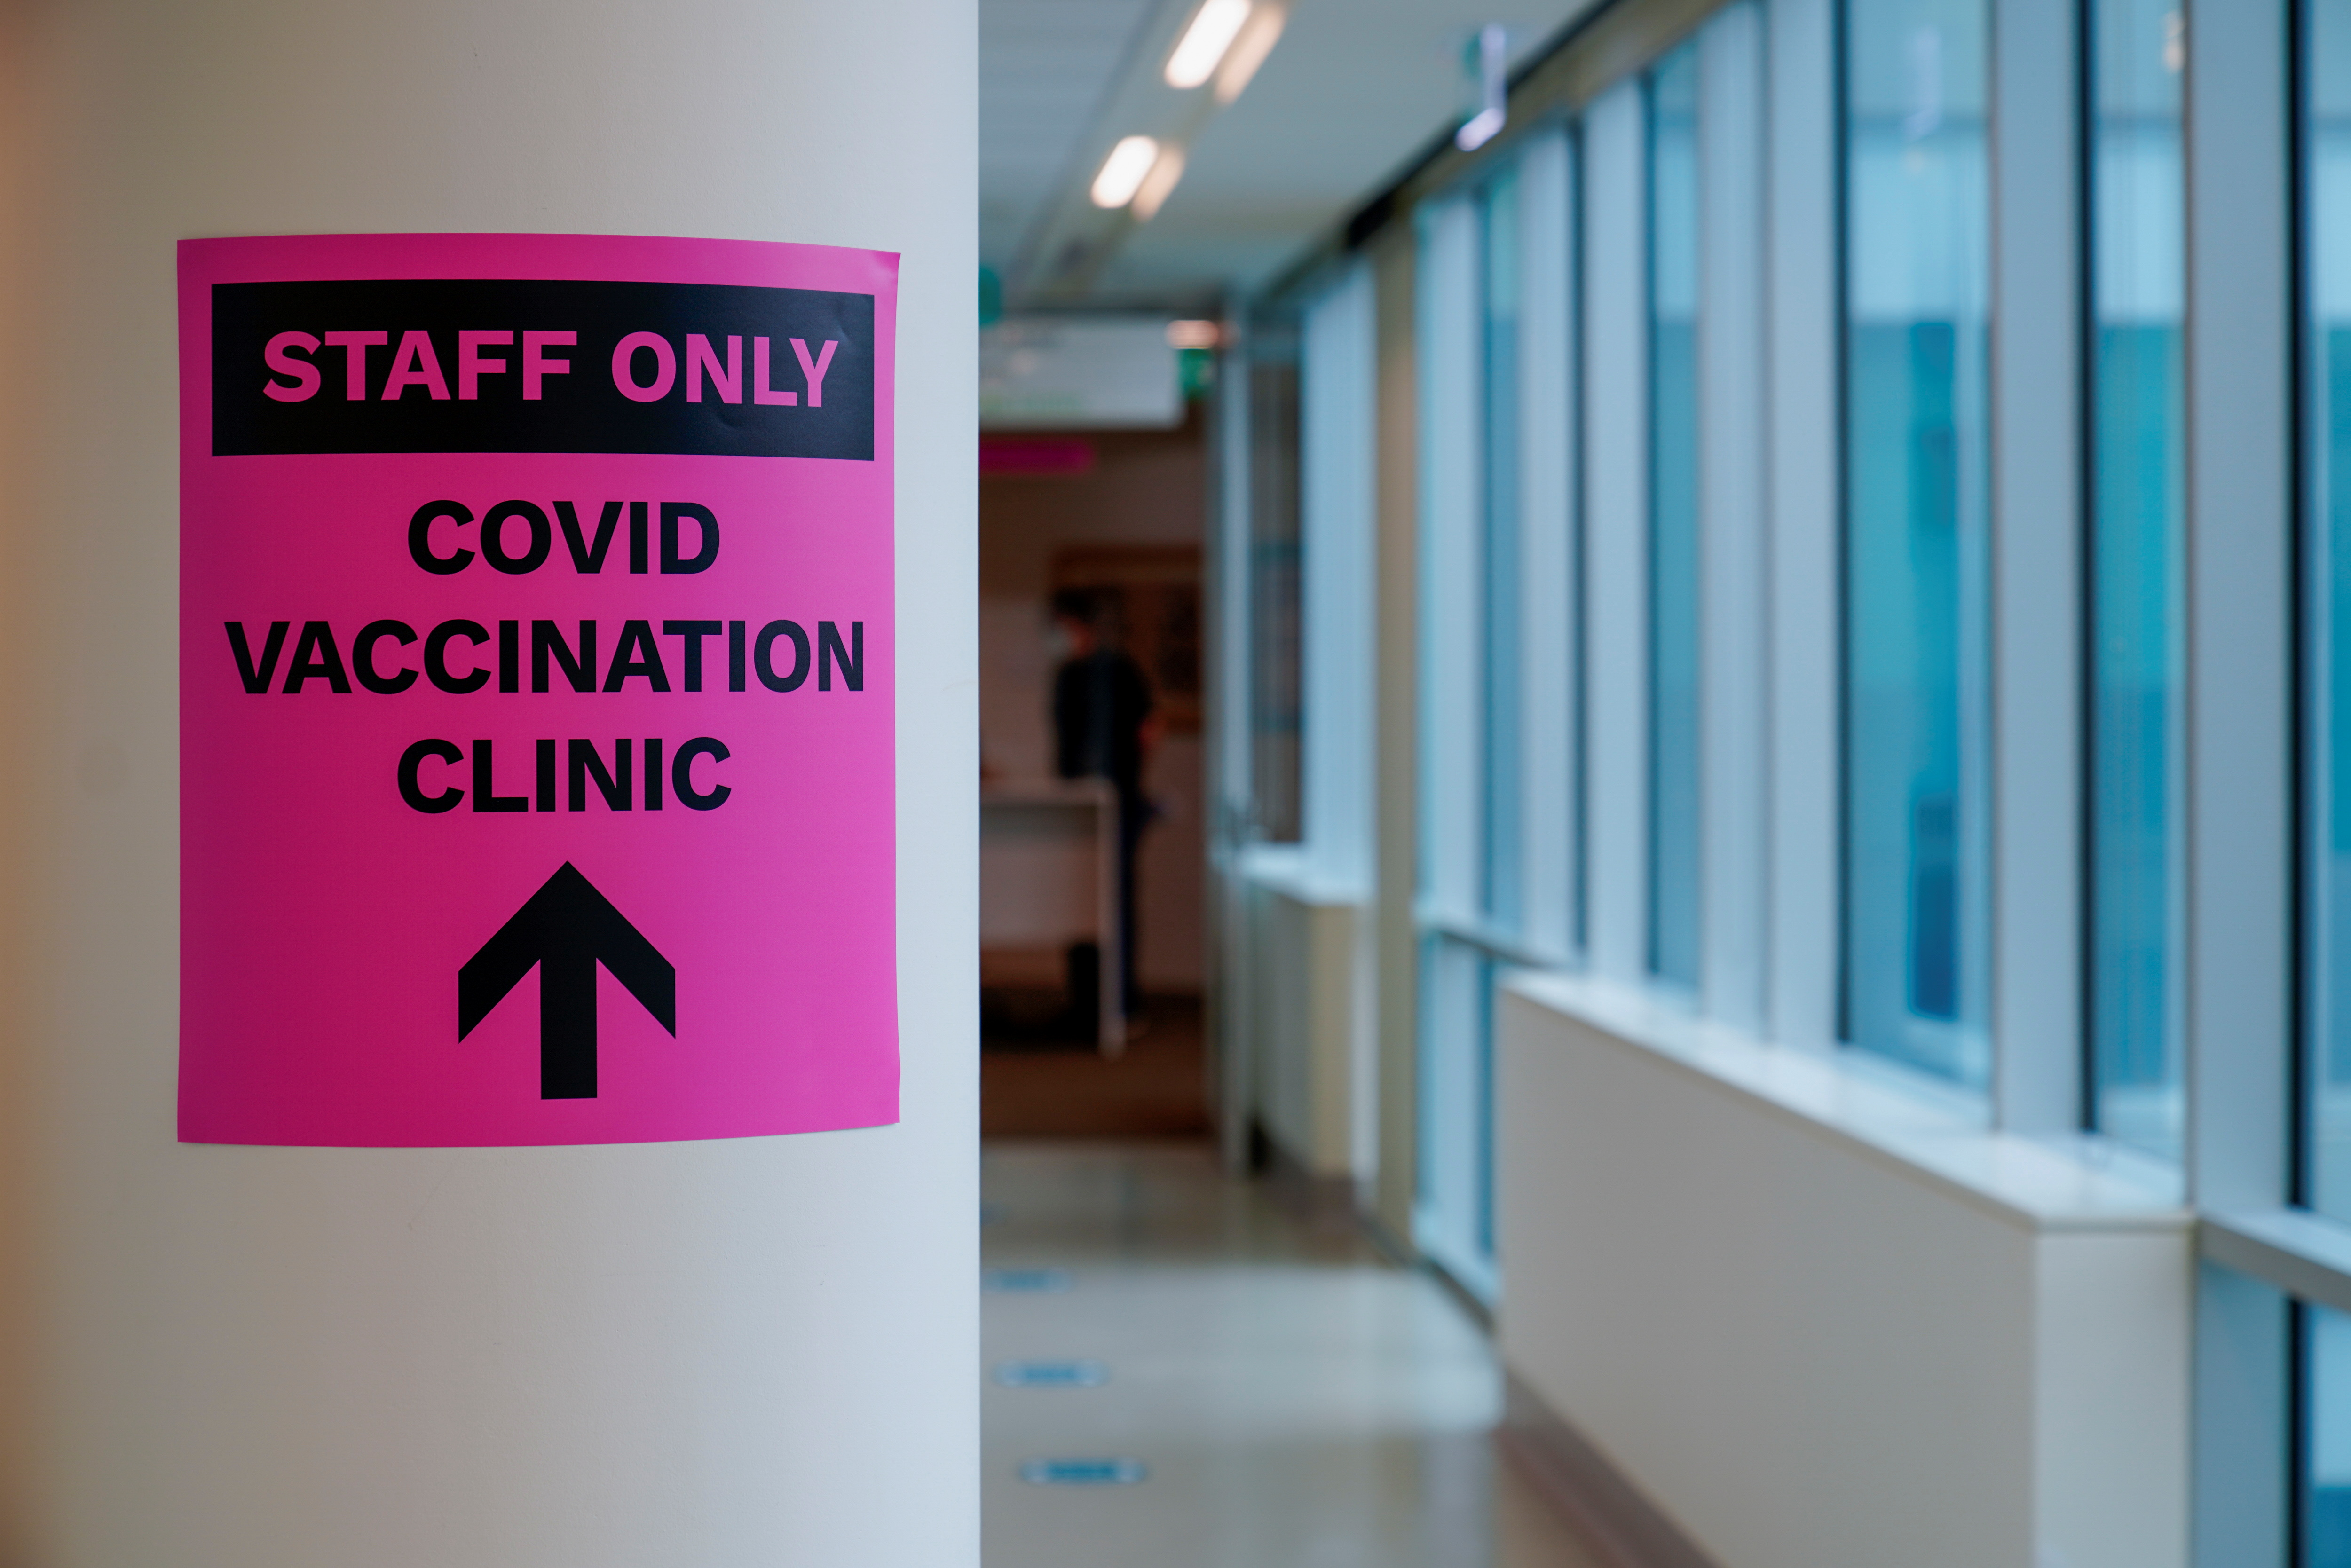 A sign for a COVID-19 vaccination clinic is seen as high-risk workers receive the first vaccines in the state of Victoria's rollout of the program, in Melbourne, Australia, February 22, 2021.  REUTERS/Sandra Sanders